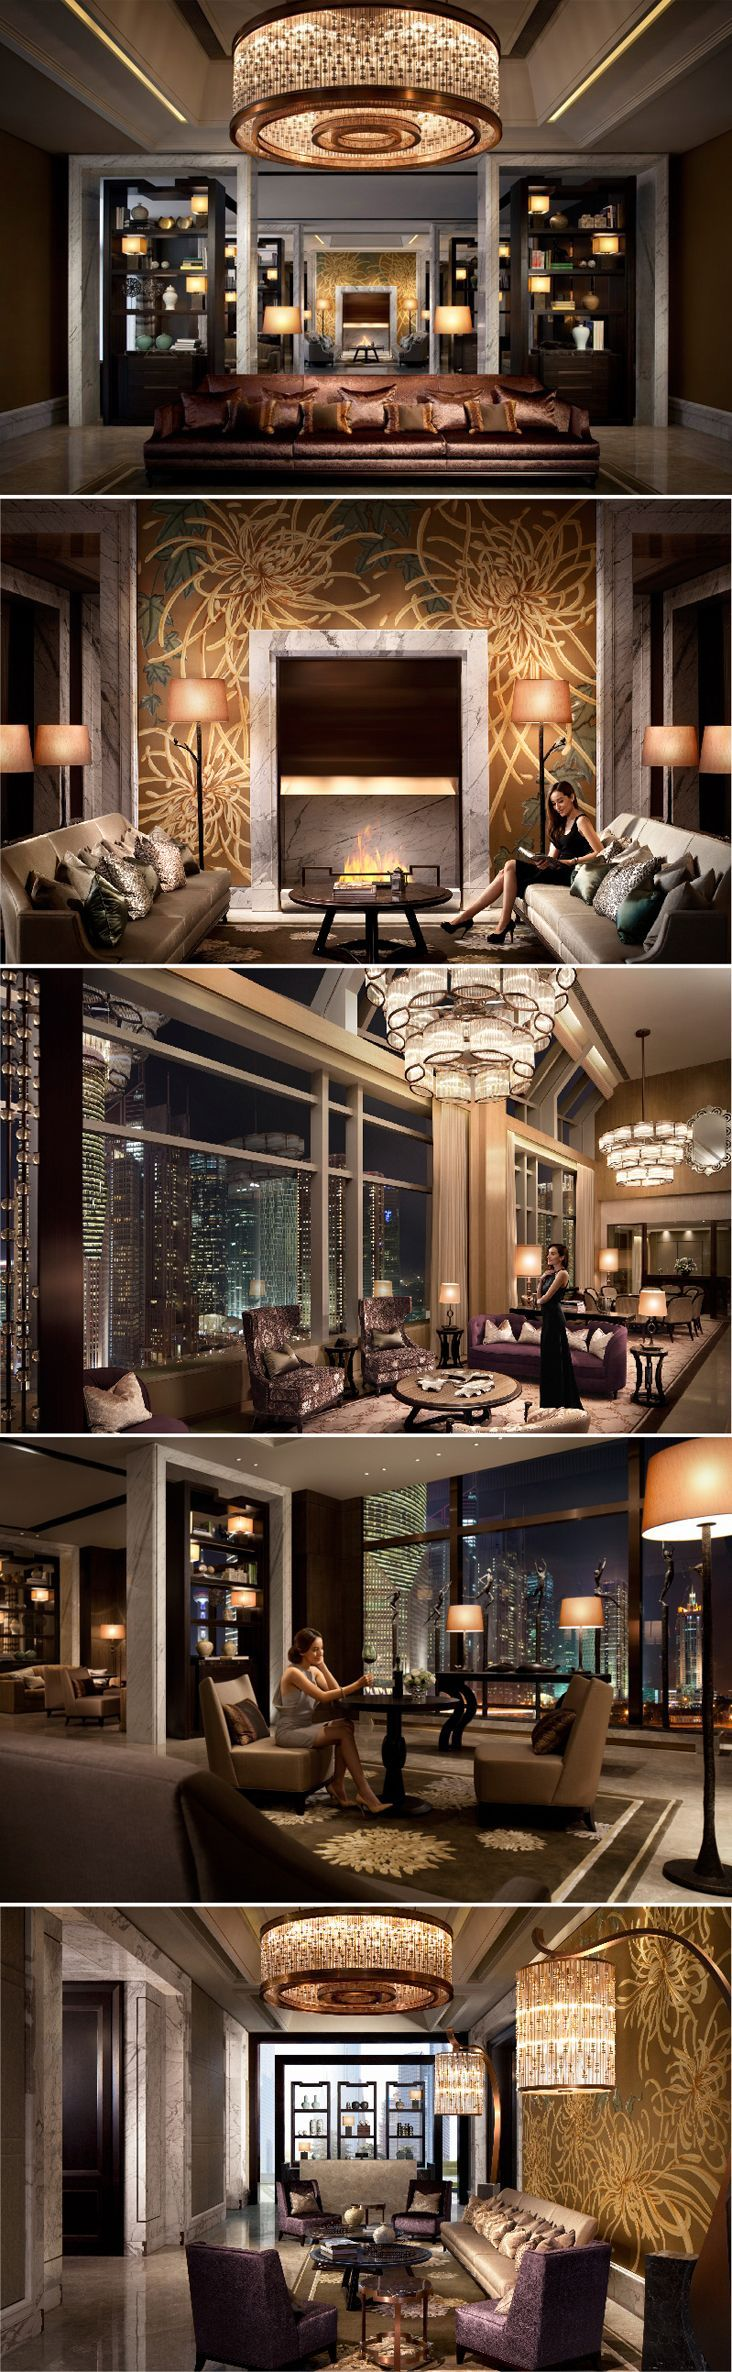 Interior New York Decor Money Penthouses Floor Plan Small Living Room California Building Modern